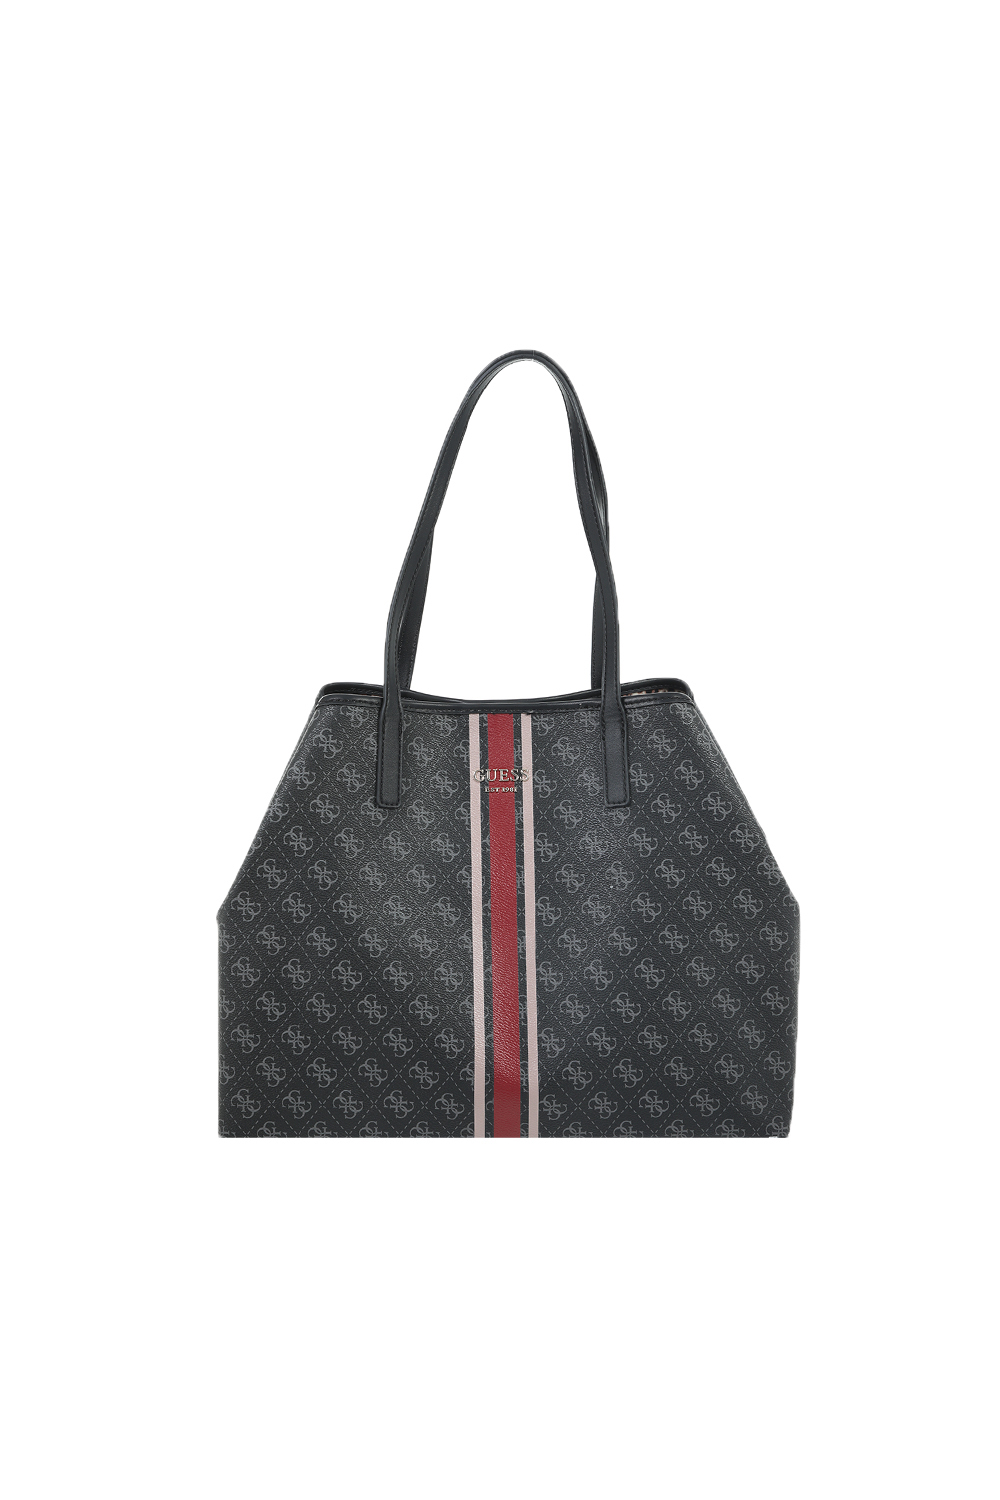 GUESS - Γυναικεία τσάντα tote GUESS VIKKY LARGE TOTE ανθρακί